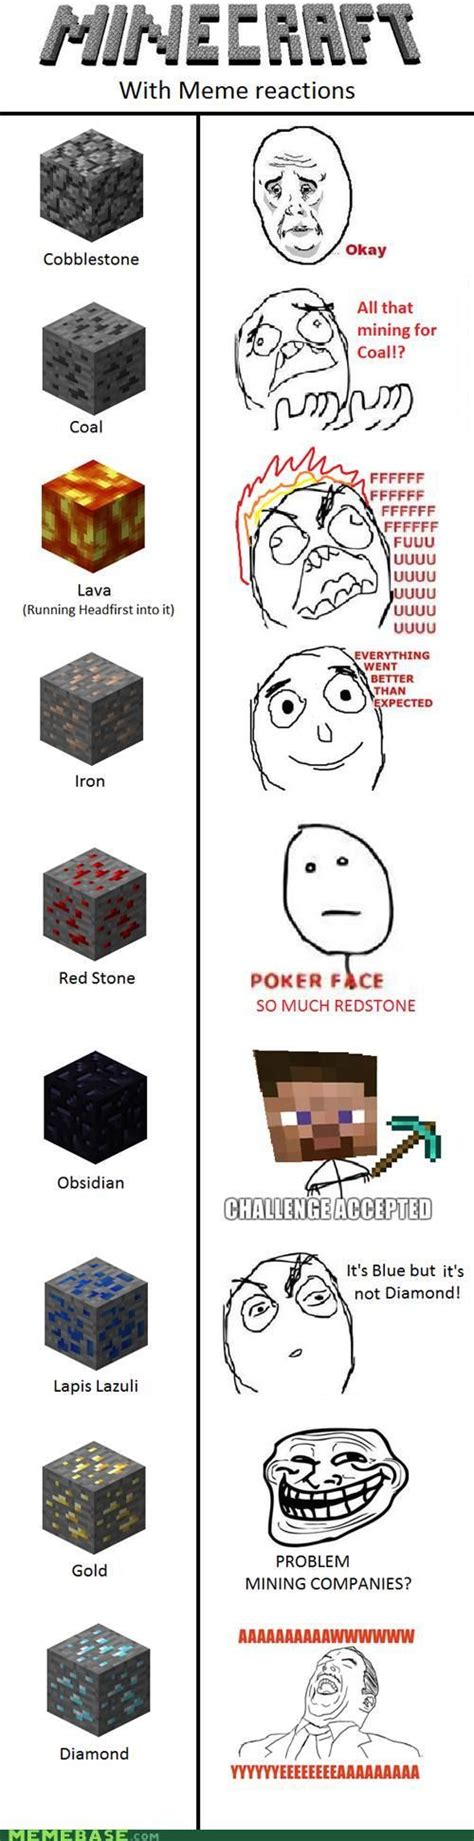 Funny Minecraft Memes - 25 best images about minecraft on pinterest minecraft creations real minecraft and minecraft